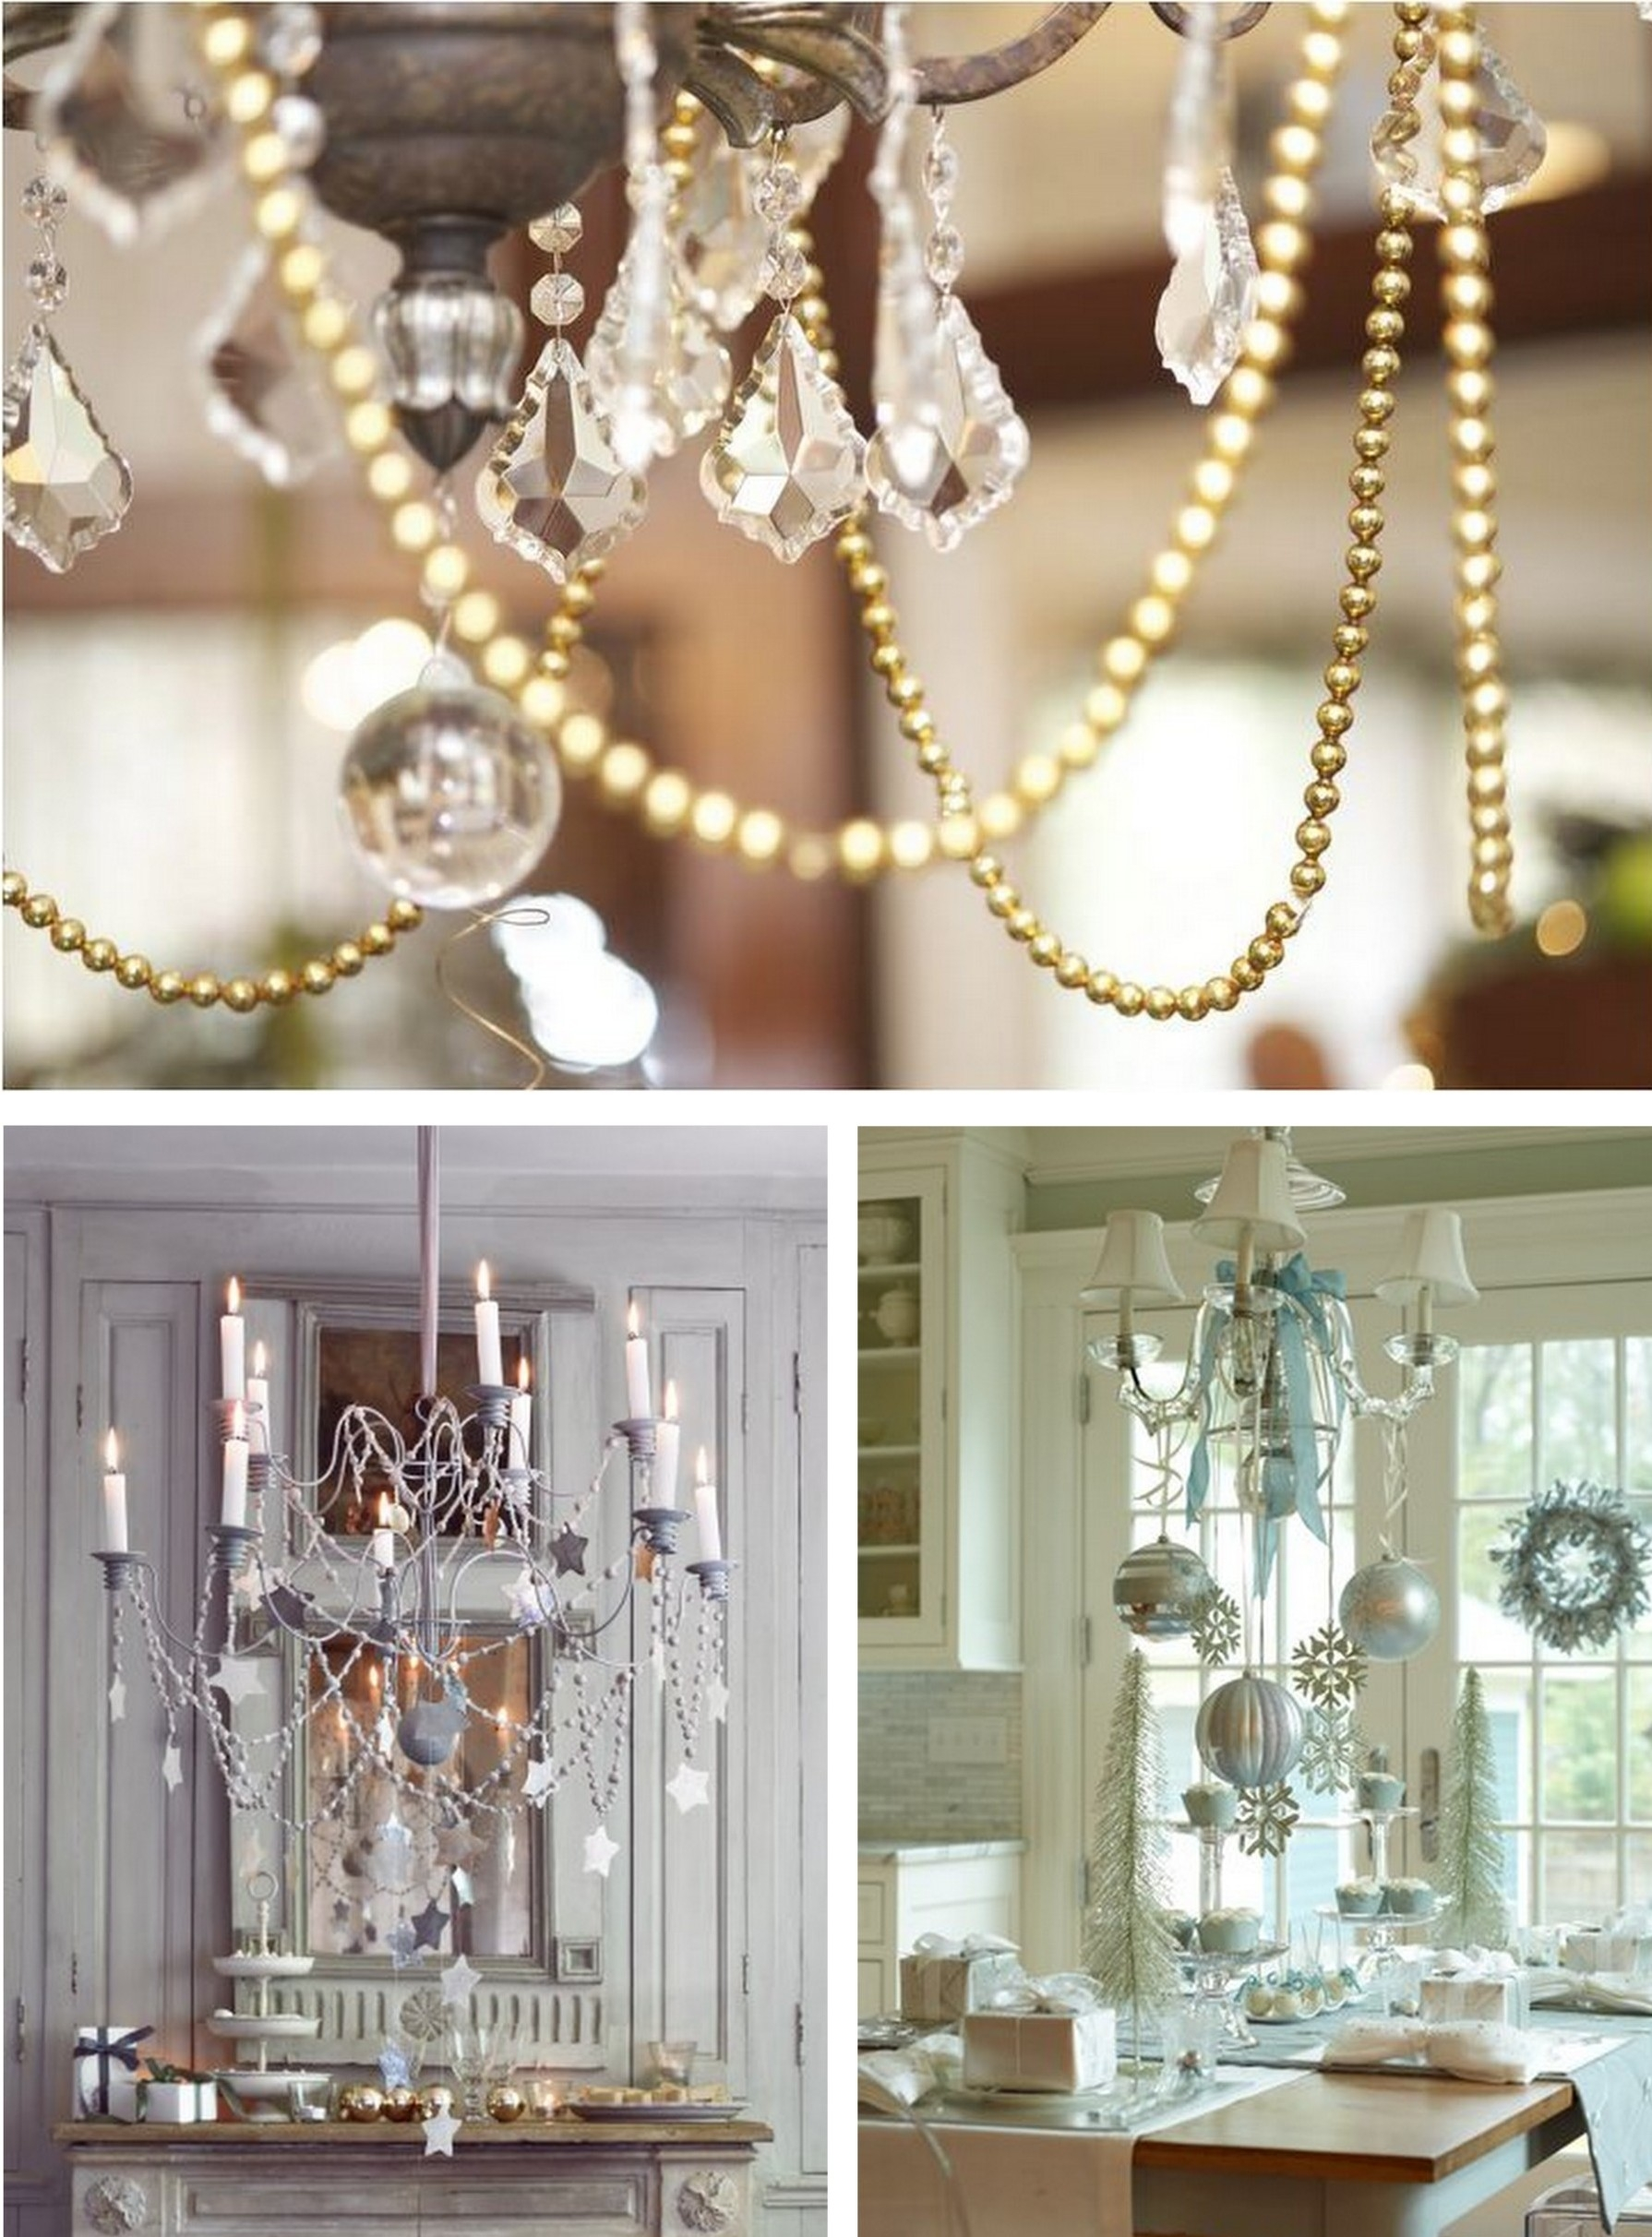 Interior Beautiful Holiday Decorating Concept Trendy Chandeliers Throughout Trendy Chandeliers (Image 7 of 11)